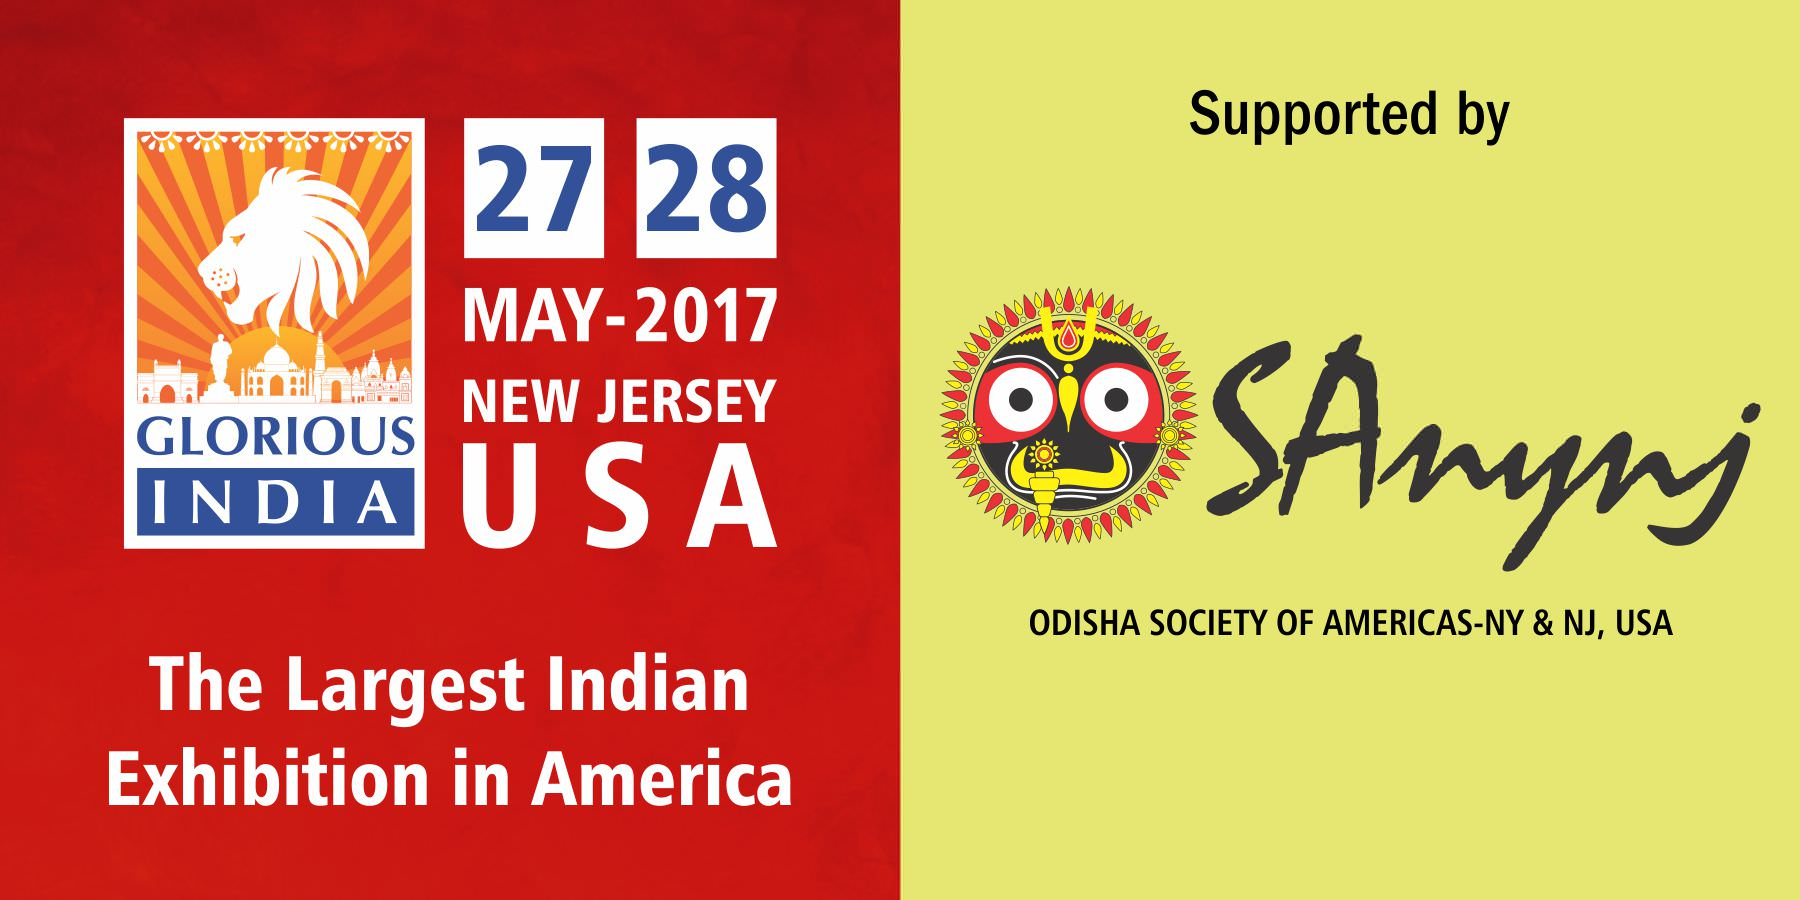 Glorious India Expo - Orissa Society of Americas